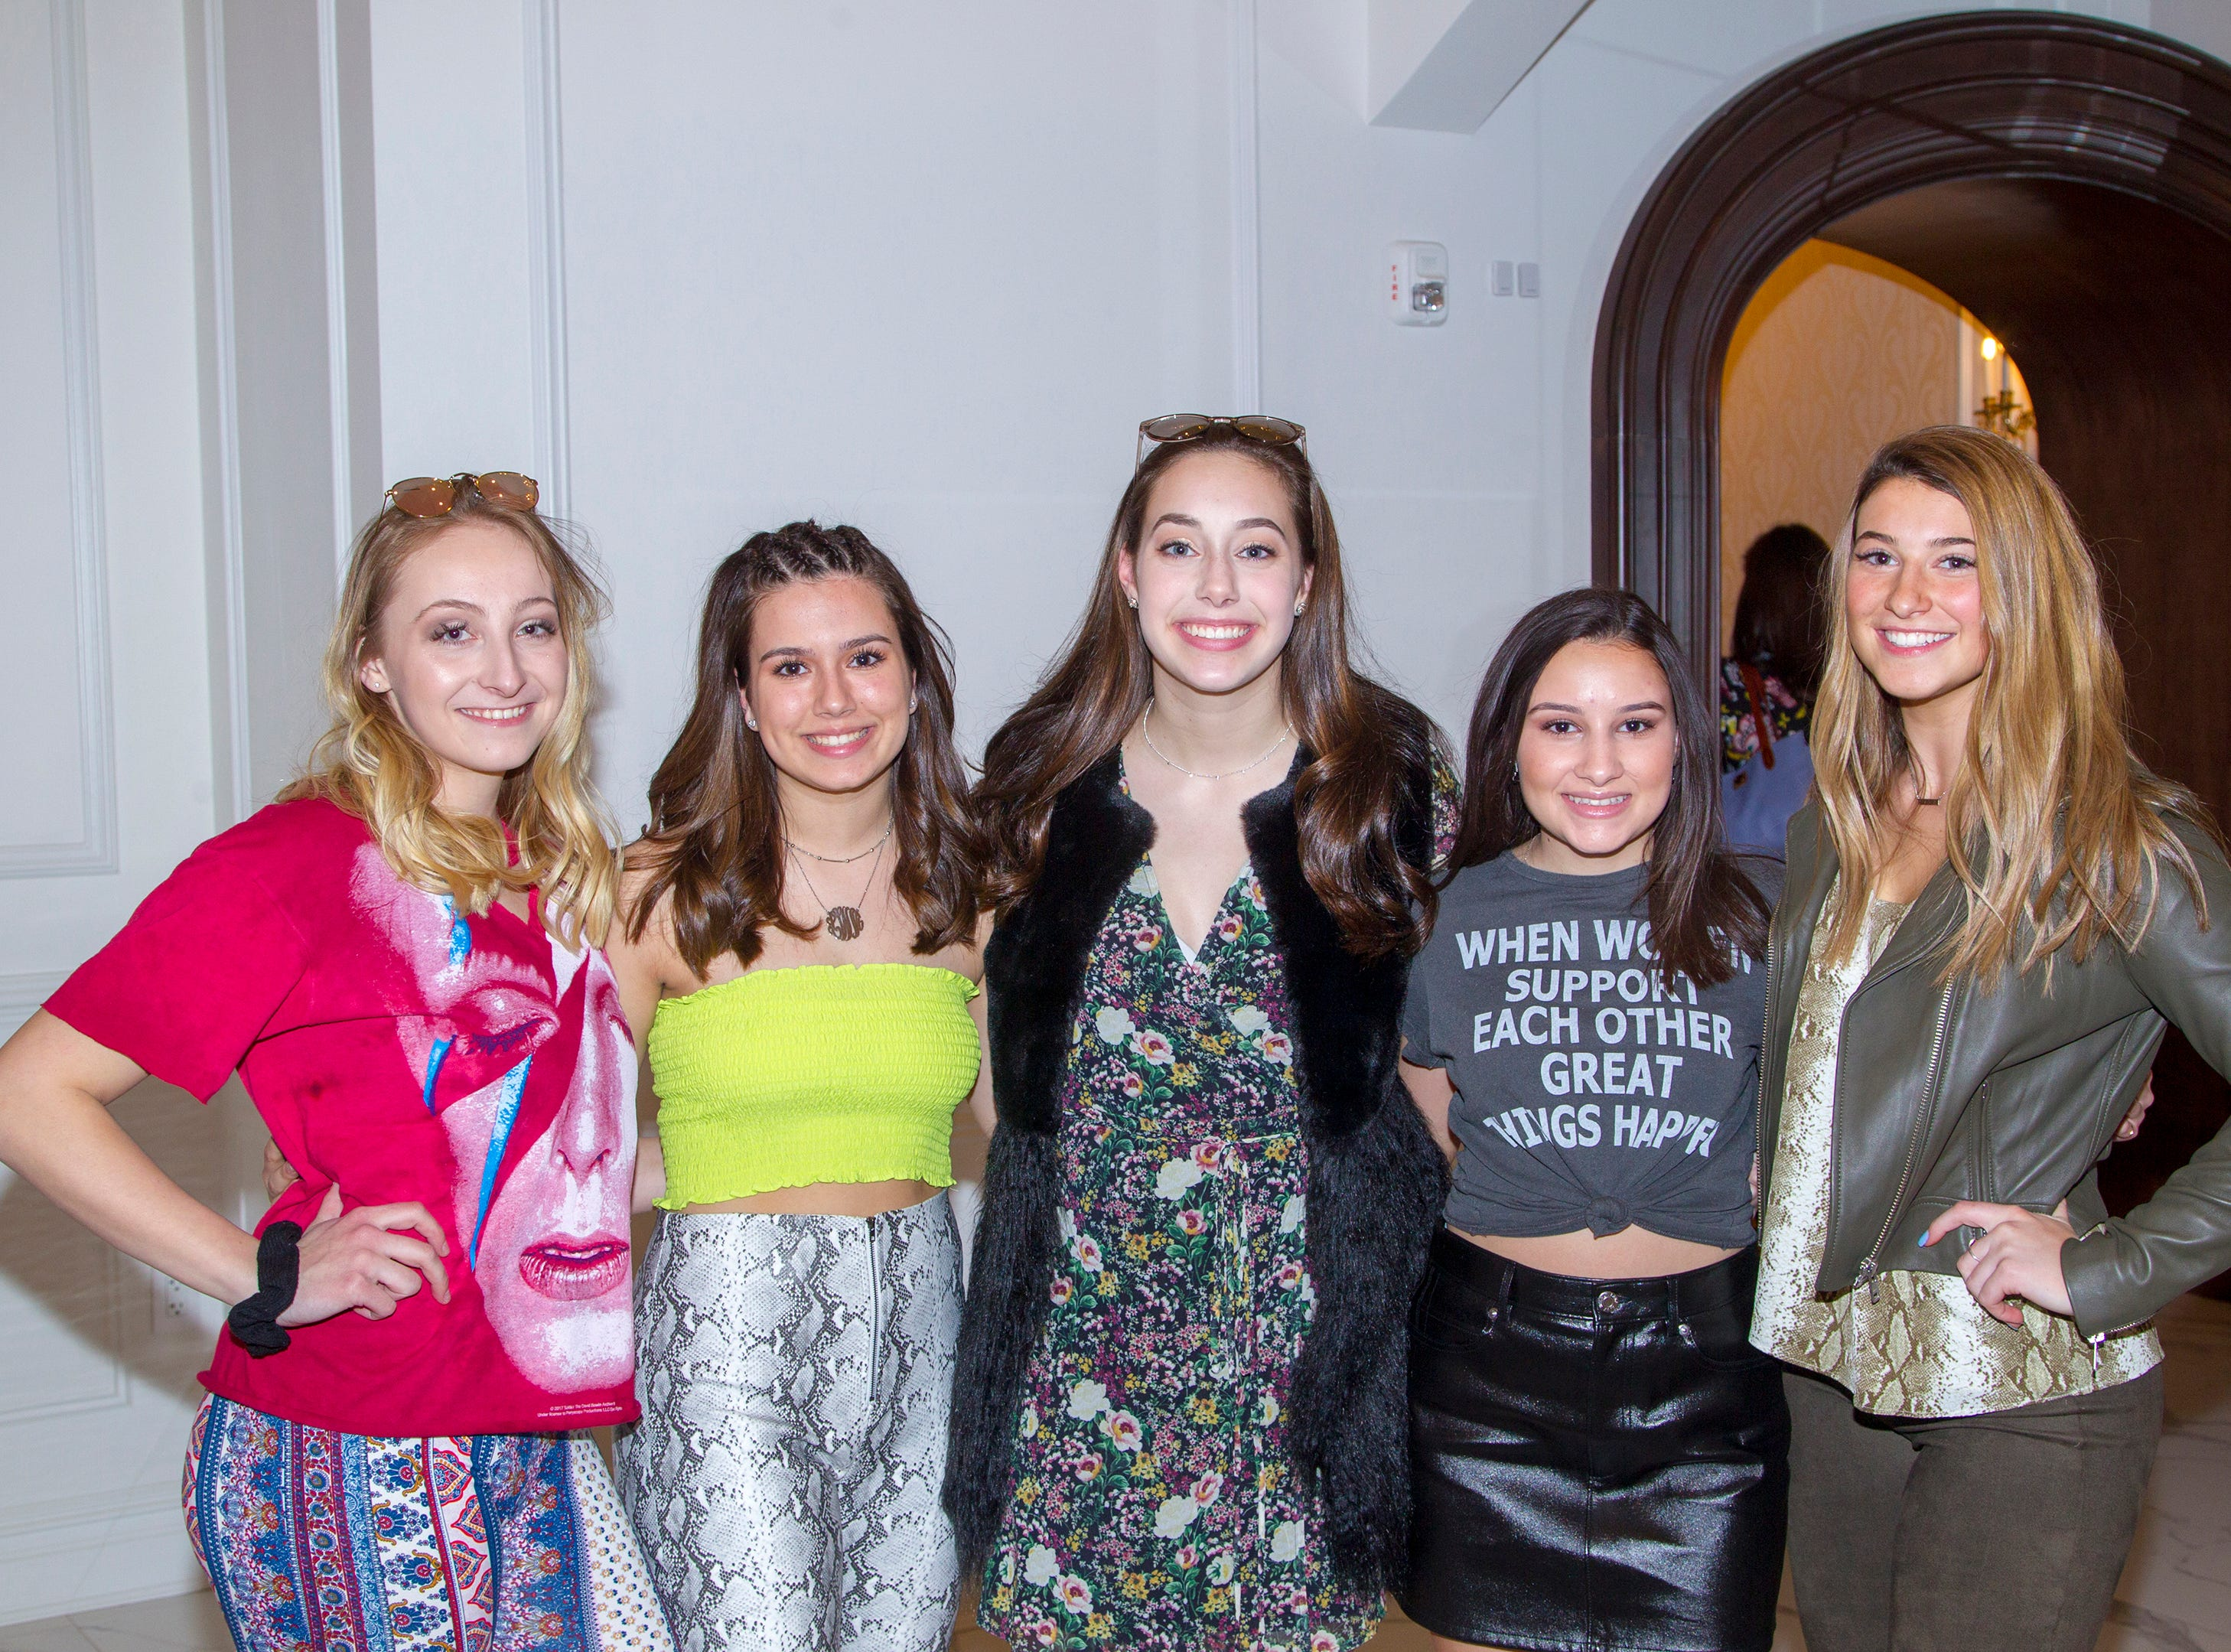 Waldwick High School held its Project Graduation Fashion Show at Macaluso's in Hawthorne. 03/13/2019